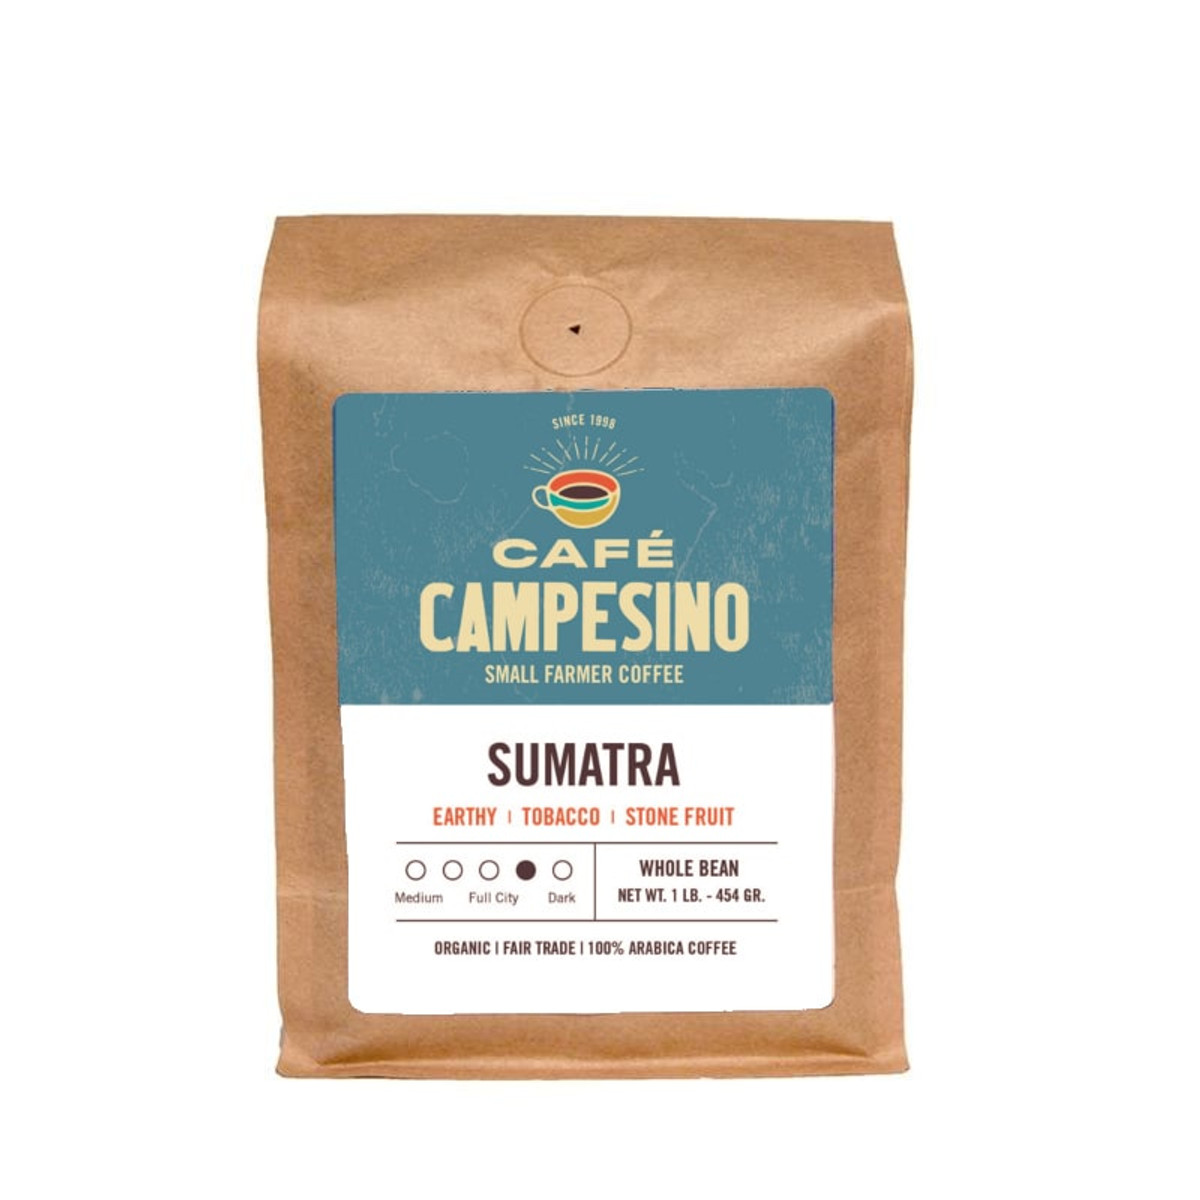 Sumatra Viennese coffee is available online for one-time purchase or as a subscription.